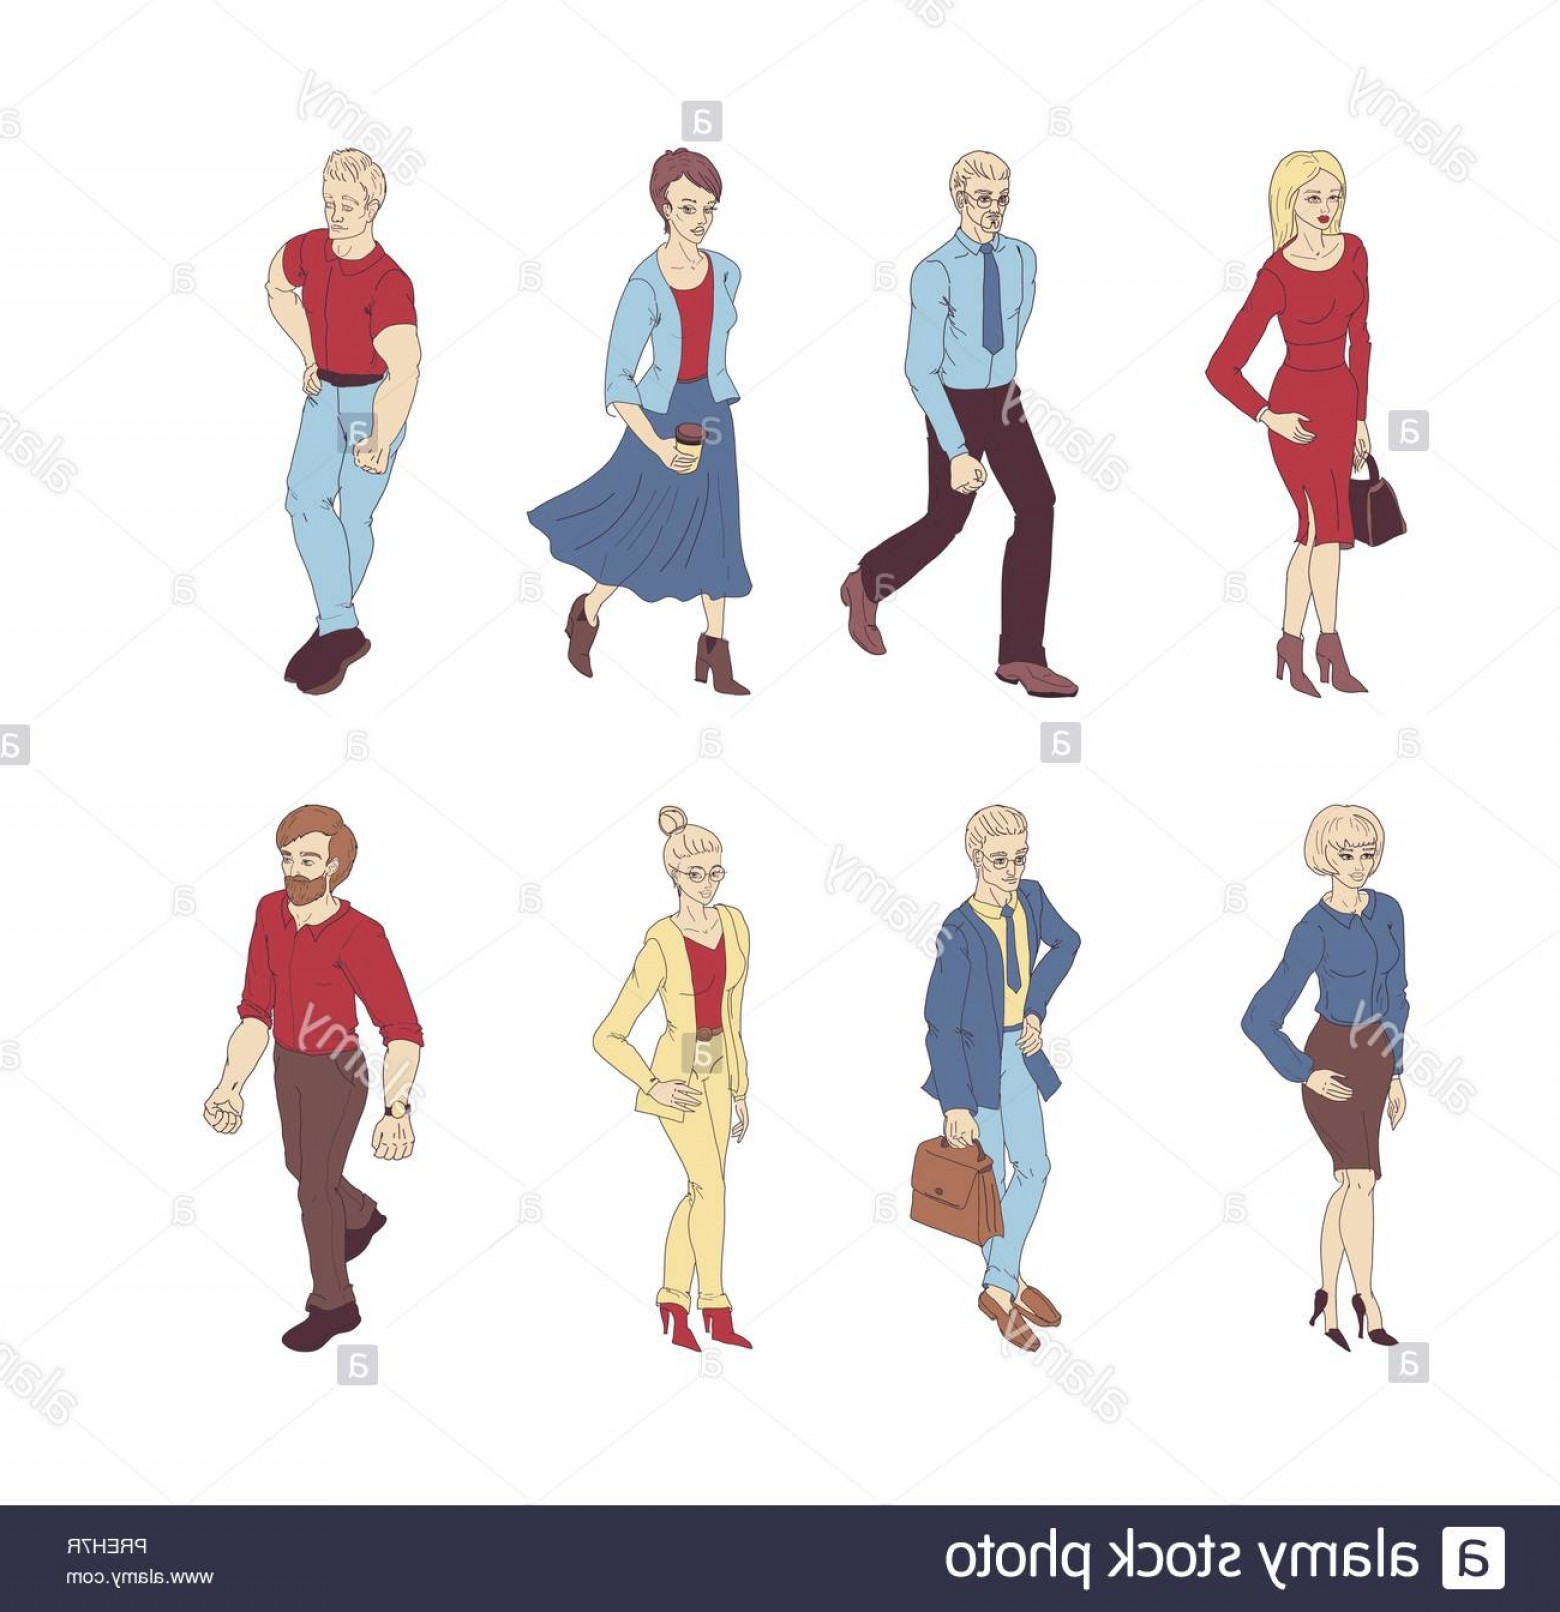 People Standing Vector: Group Of People Standing On White Background Vector Business Men And Women Cartoon Style Characters Image